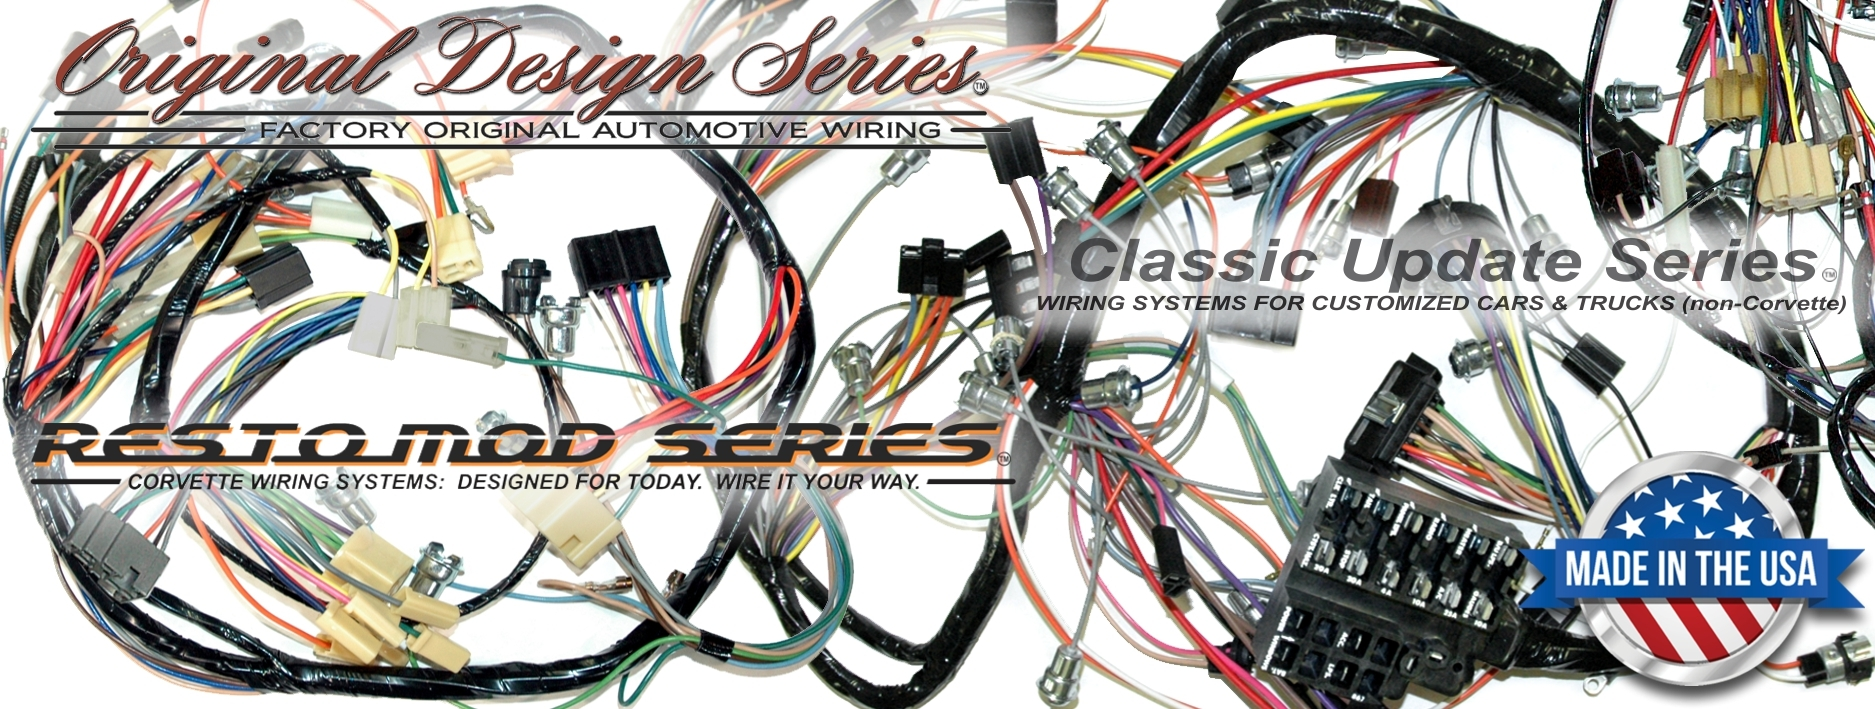 hight resolution of exact oem reproduction wiring harnesses and restomod wiring systems 1965 corvette new repro dash ip wiring harness w bu lamps usa made